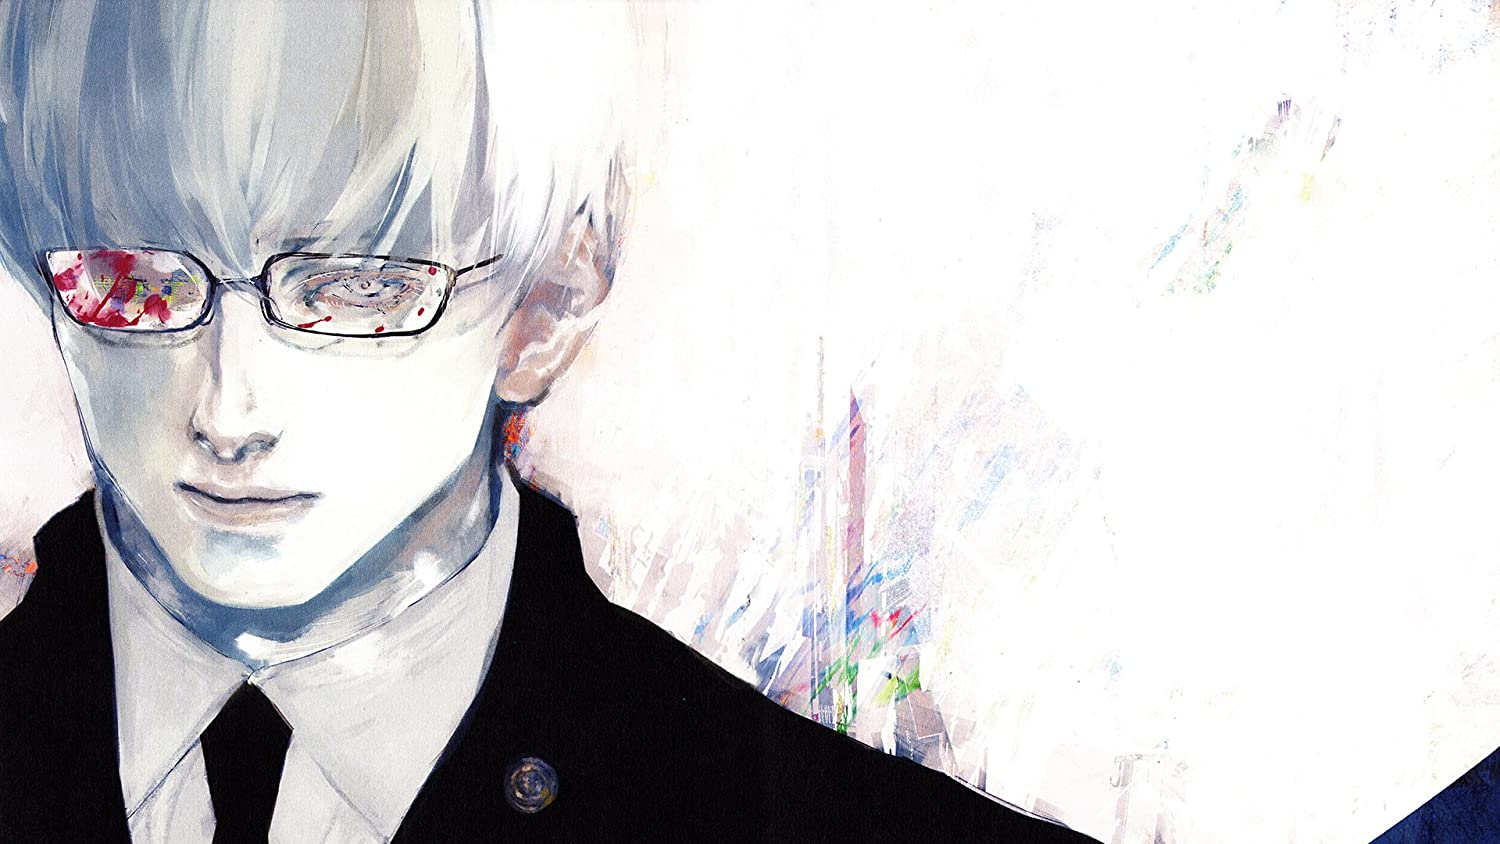 Anime Tokyo Ghoul Kishou Arima Boy Tokyo Ghoul A Tokyo Ghoul Re White Hair Glasses Blood White Eyes Poster 300 Gsm Quality 12x18 Inch Size Amazon In Home Kitchen